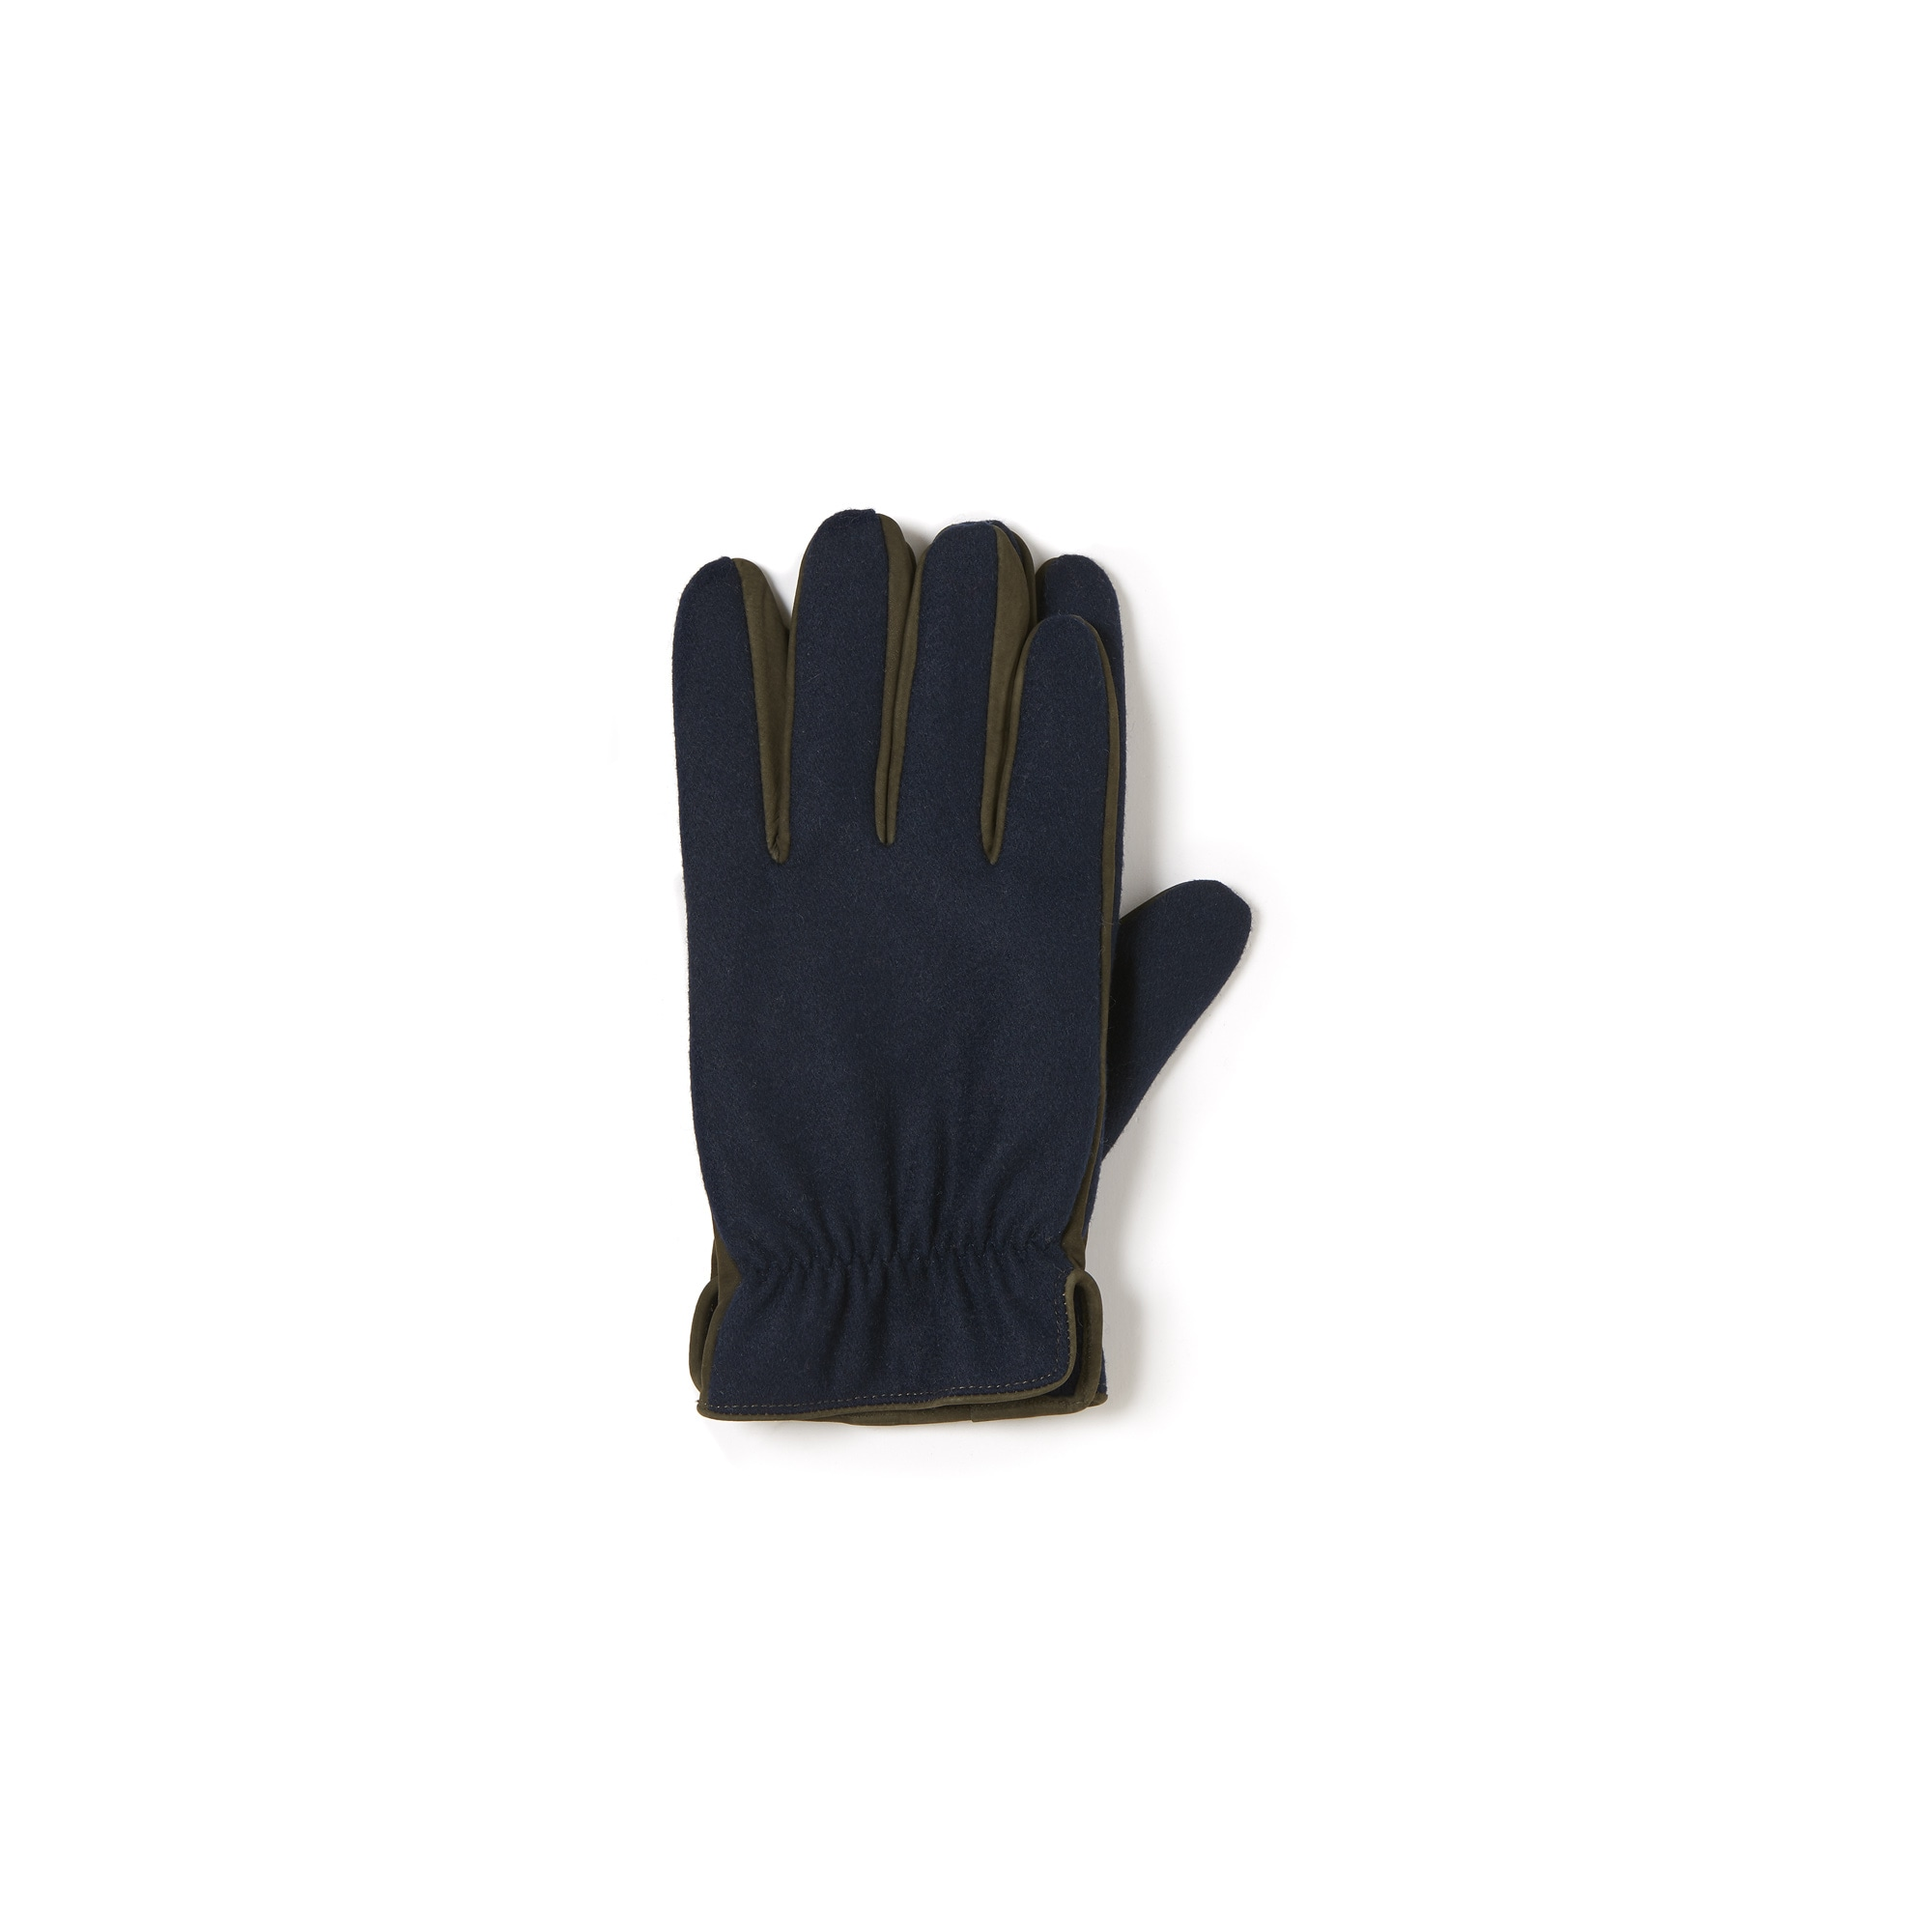 Men's Bicolor Leather And Wool Gloves